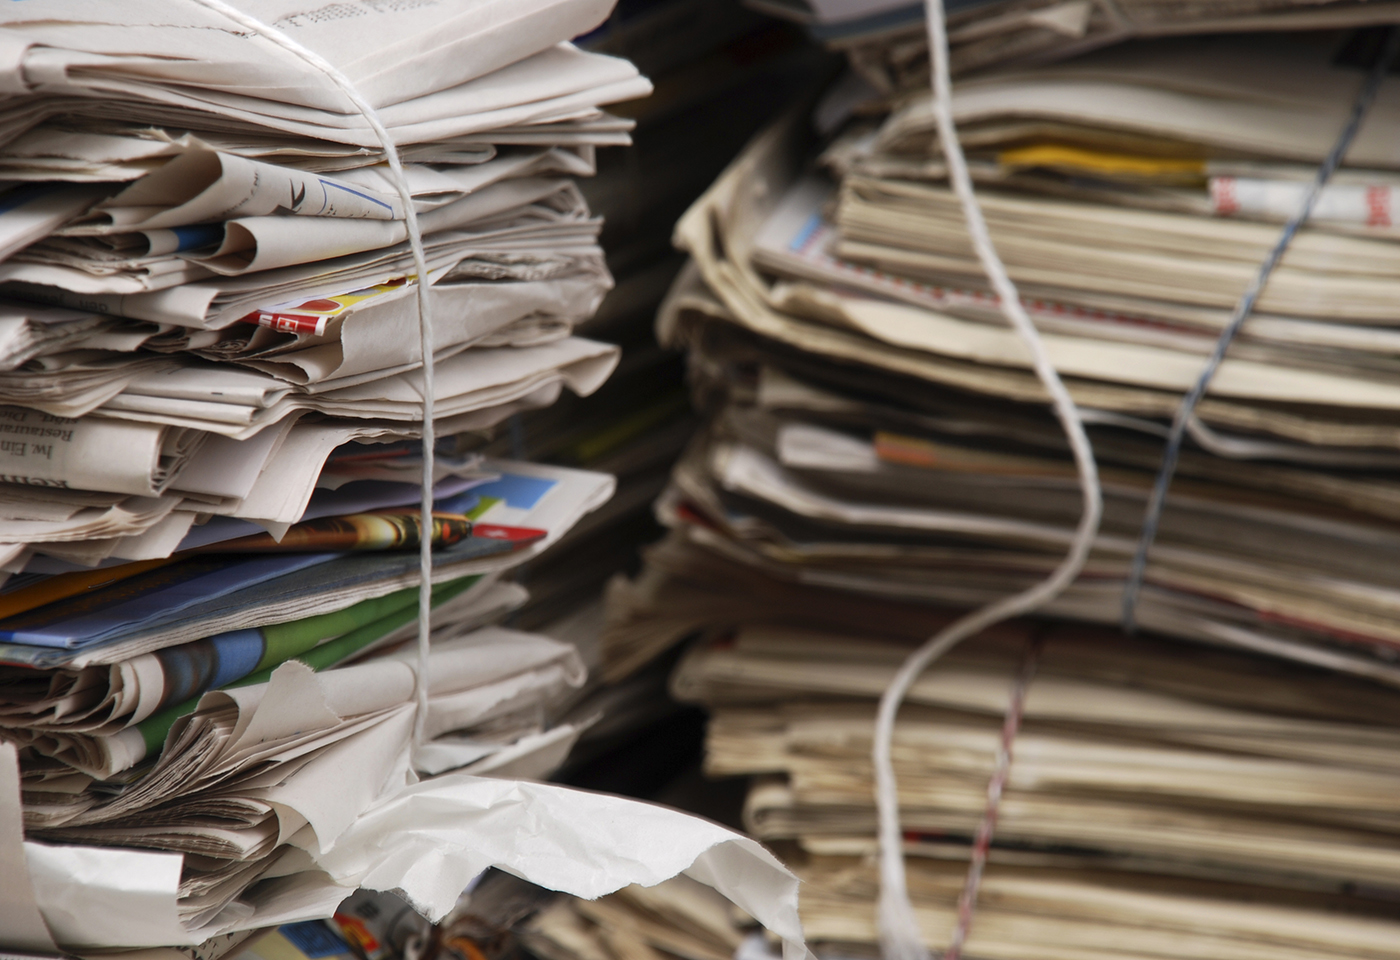 Stacks of newspaper and paper